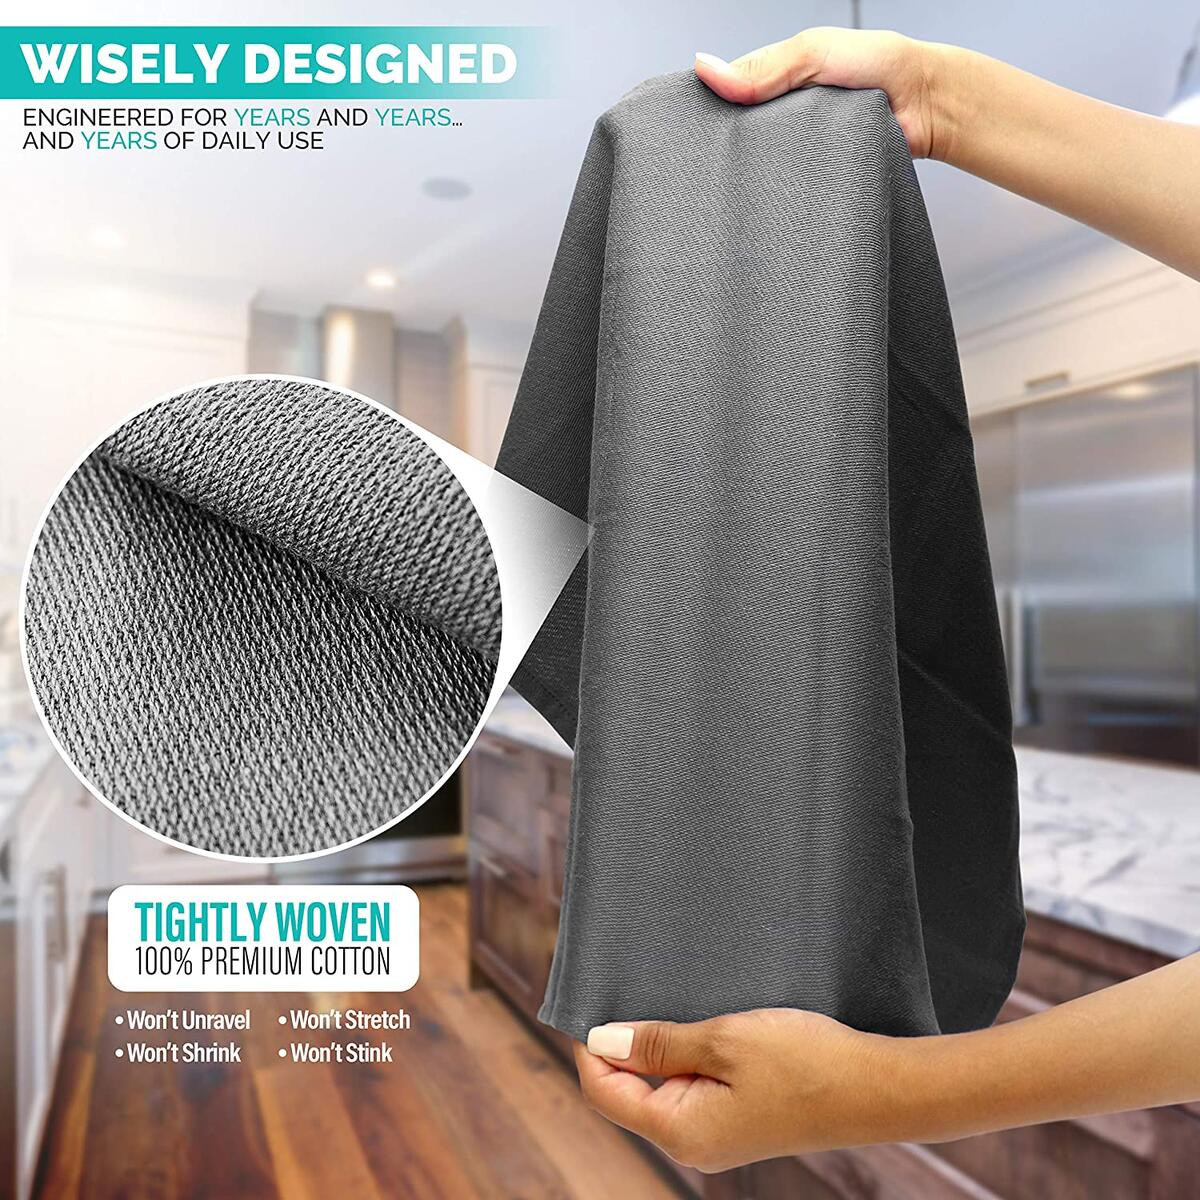 Kitchen Towels & Dishcloth Sets – Amazing Lint-Free, Odor & Stain Repelling Flour Sack Towels & Dish Sets for Drying Dishes Polishing Serving Dinner Napkins – 4 Kitchen Towels(Grey/White, 28